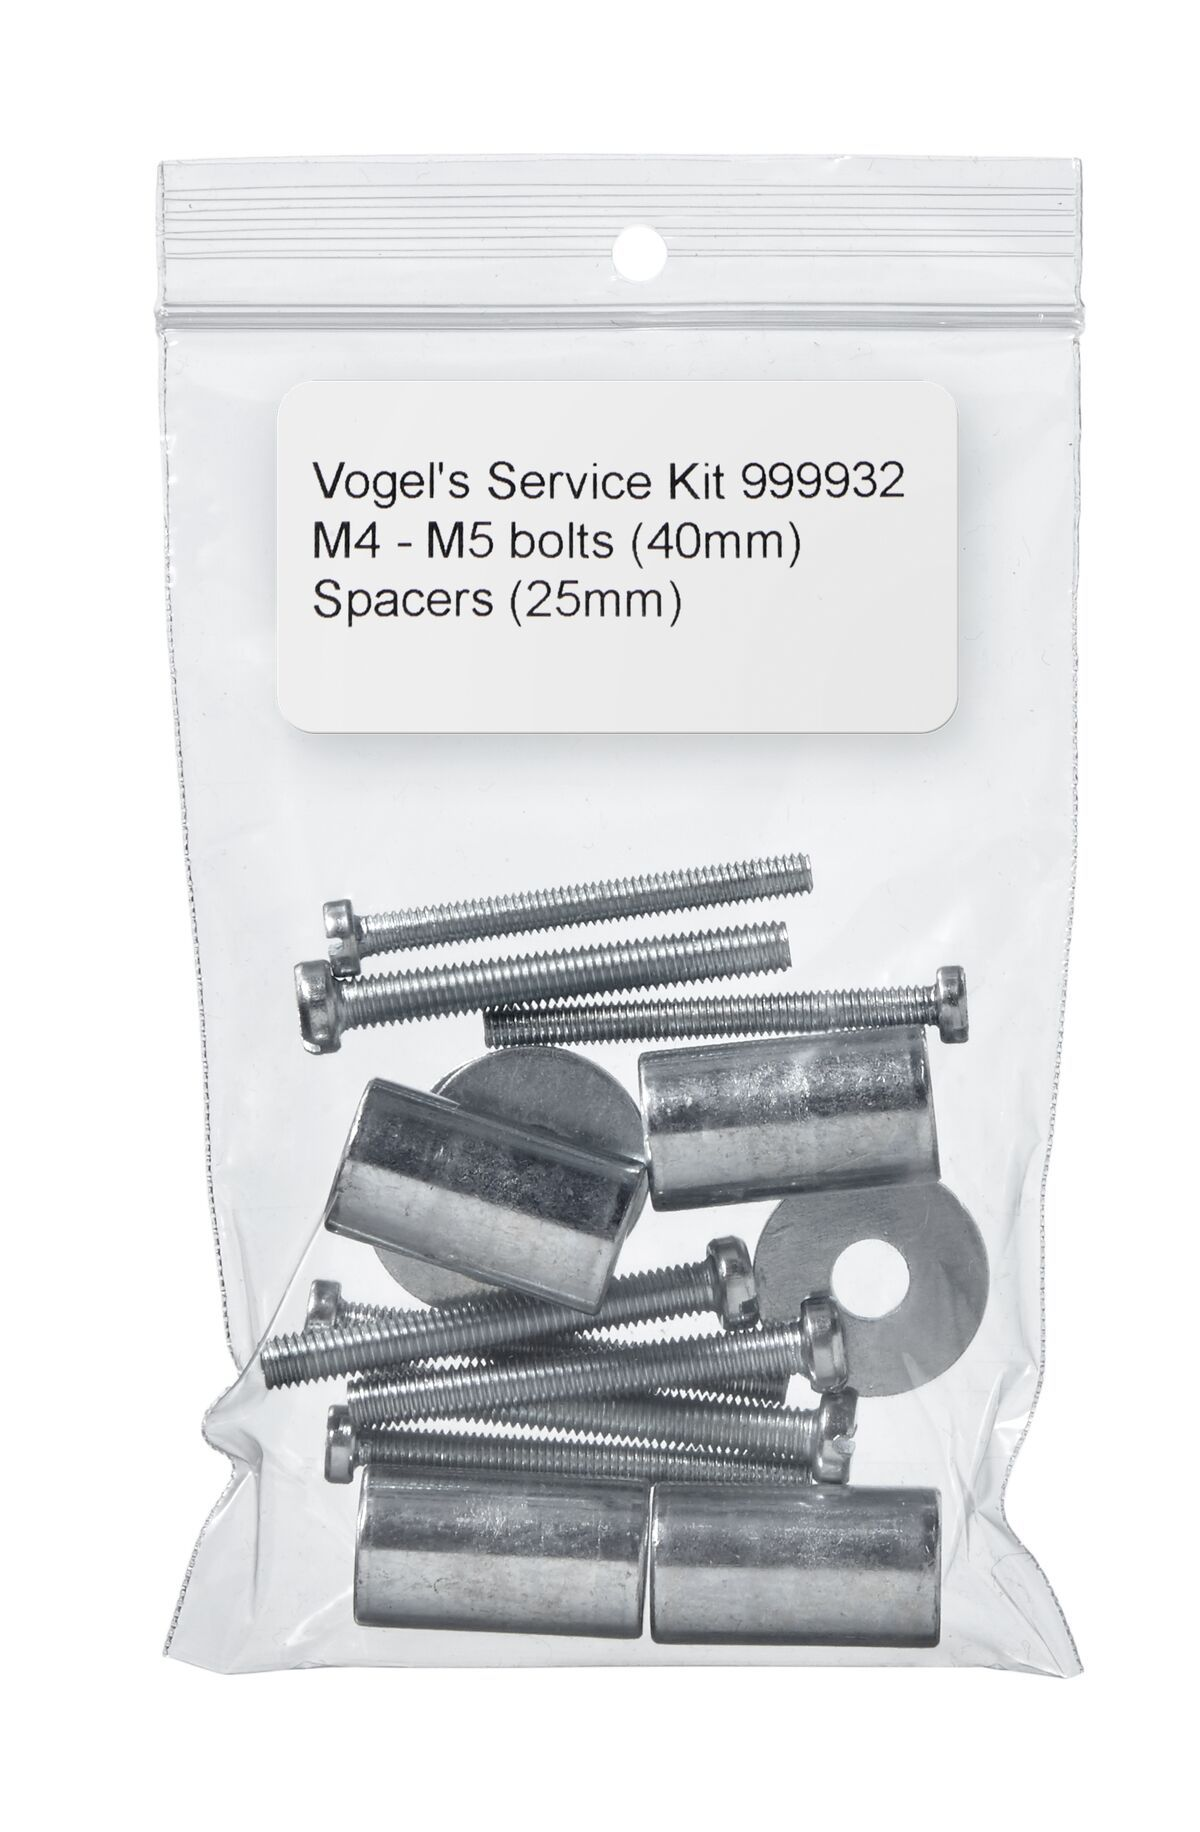 Vogel's Service Kit - Spacers (25 mm), M4-M5 bolts (40 mm) - Product